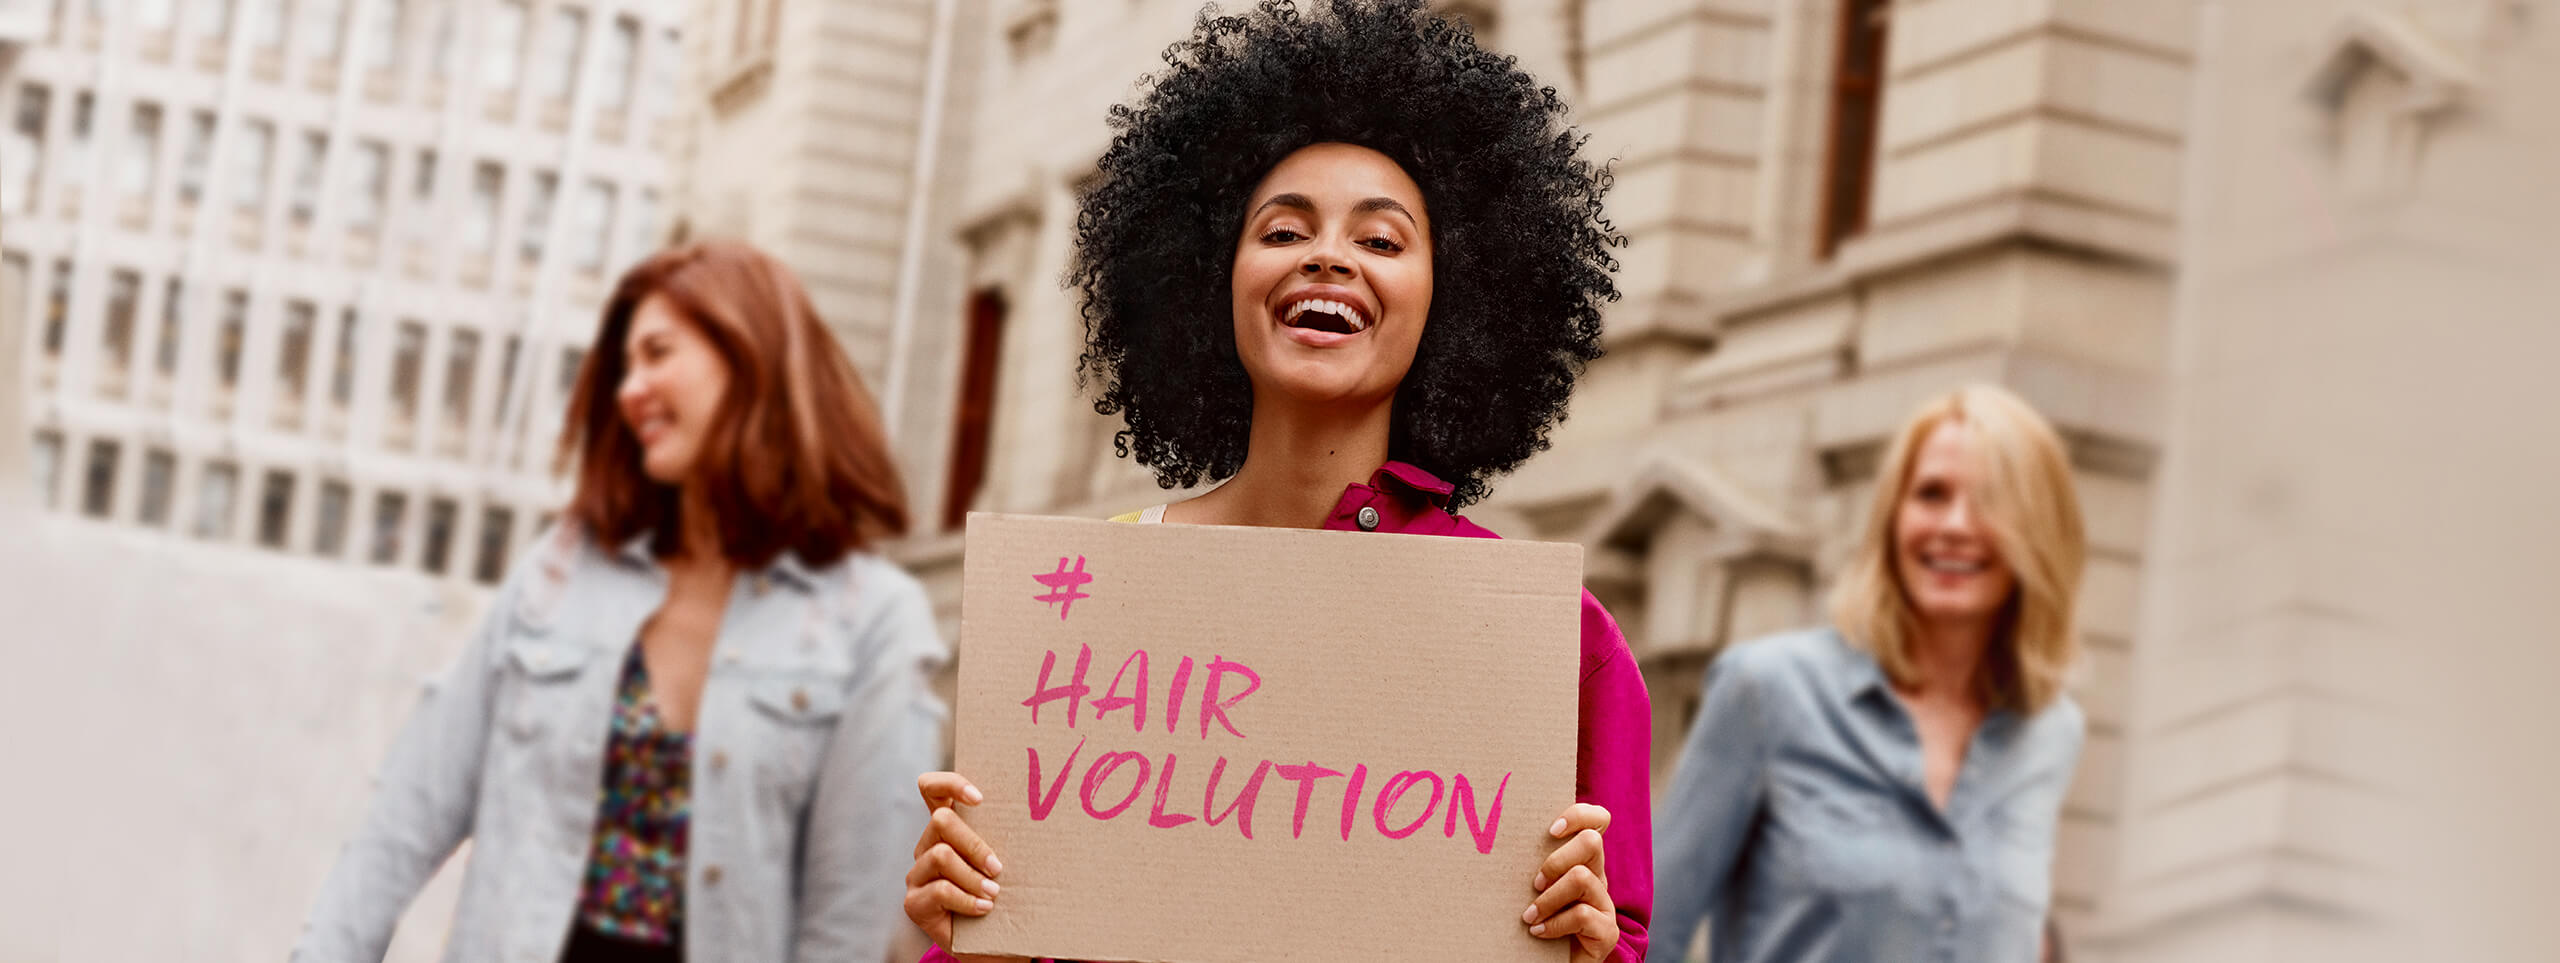 only_love_de_hair_volution_2560x963